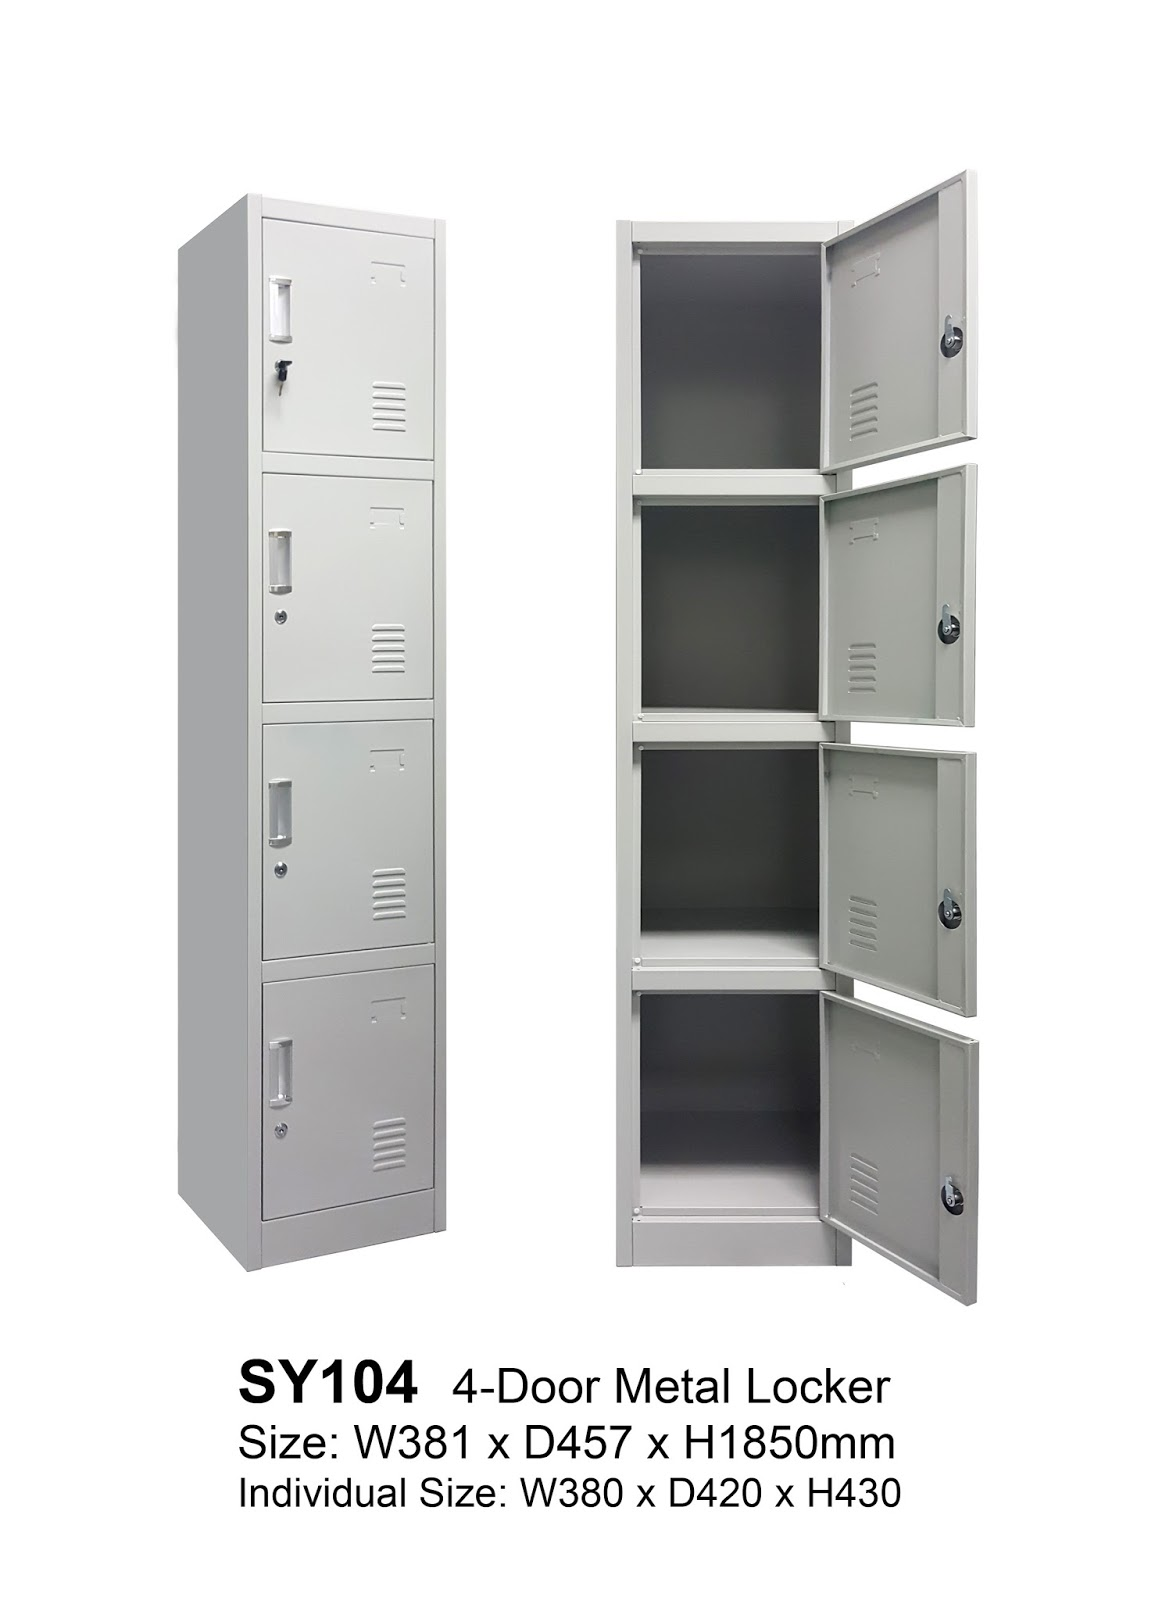 Kaimay Trading Pte Ltd Projects Wholesaler Metal Cabinet